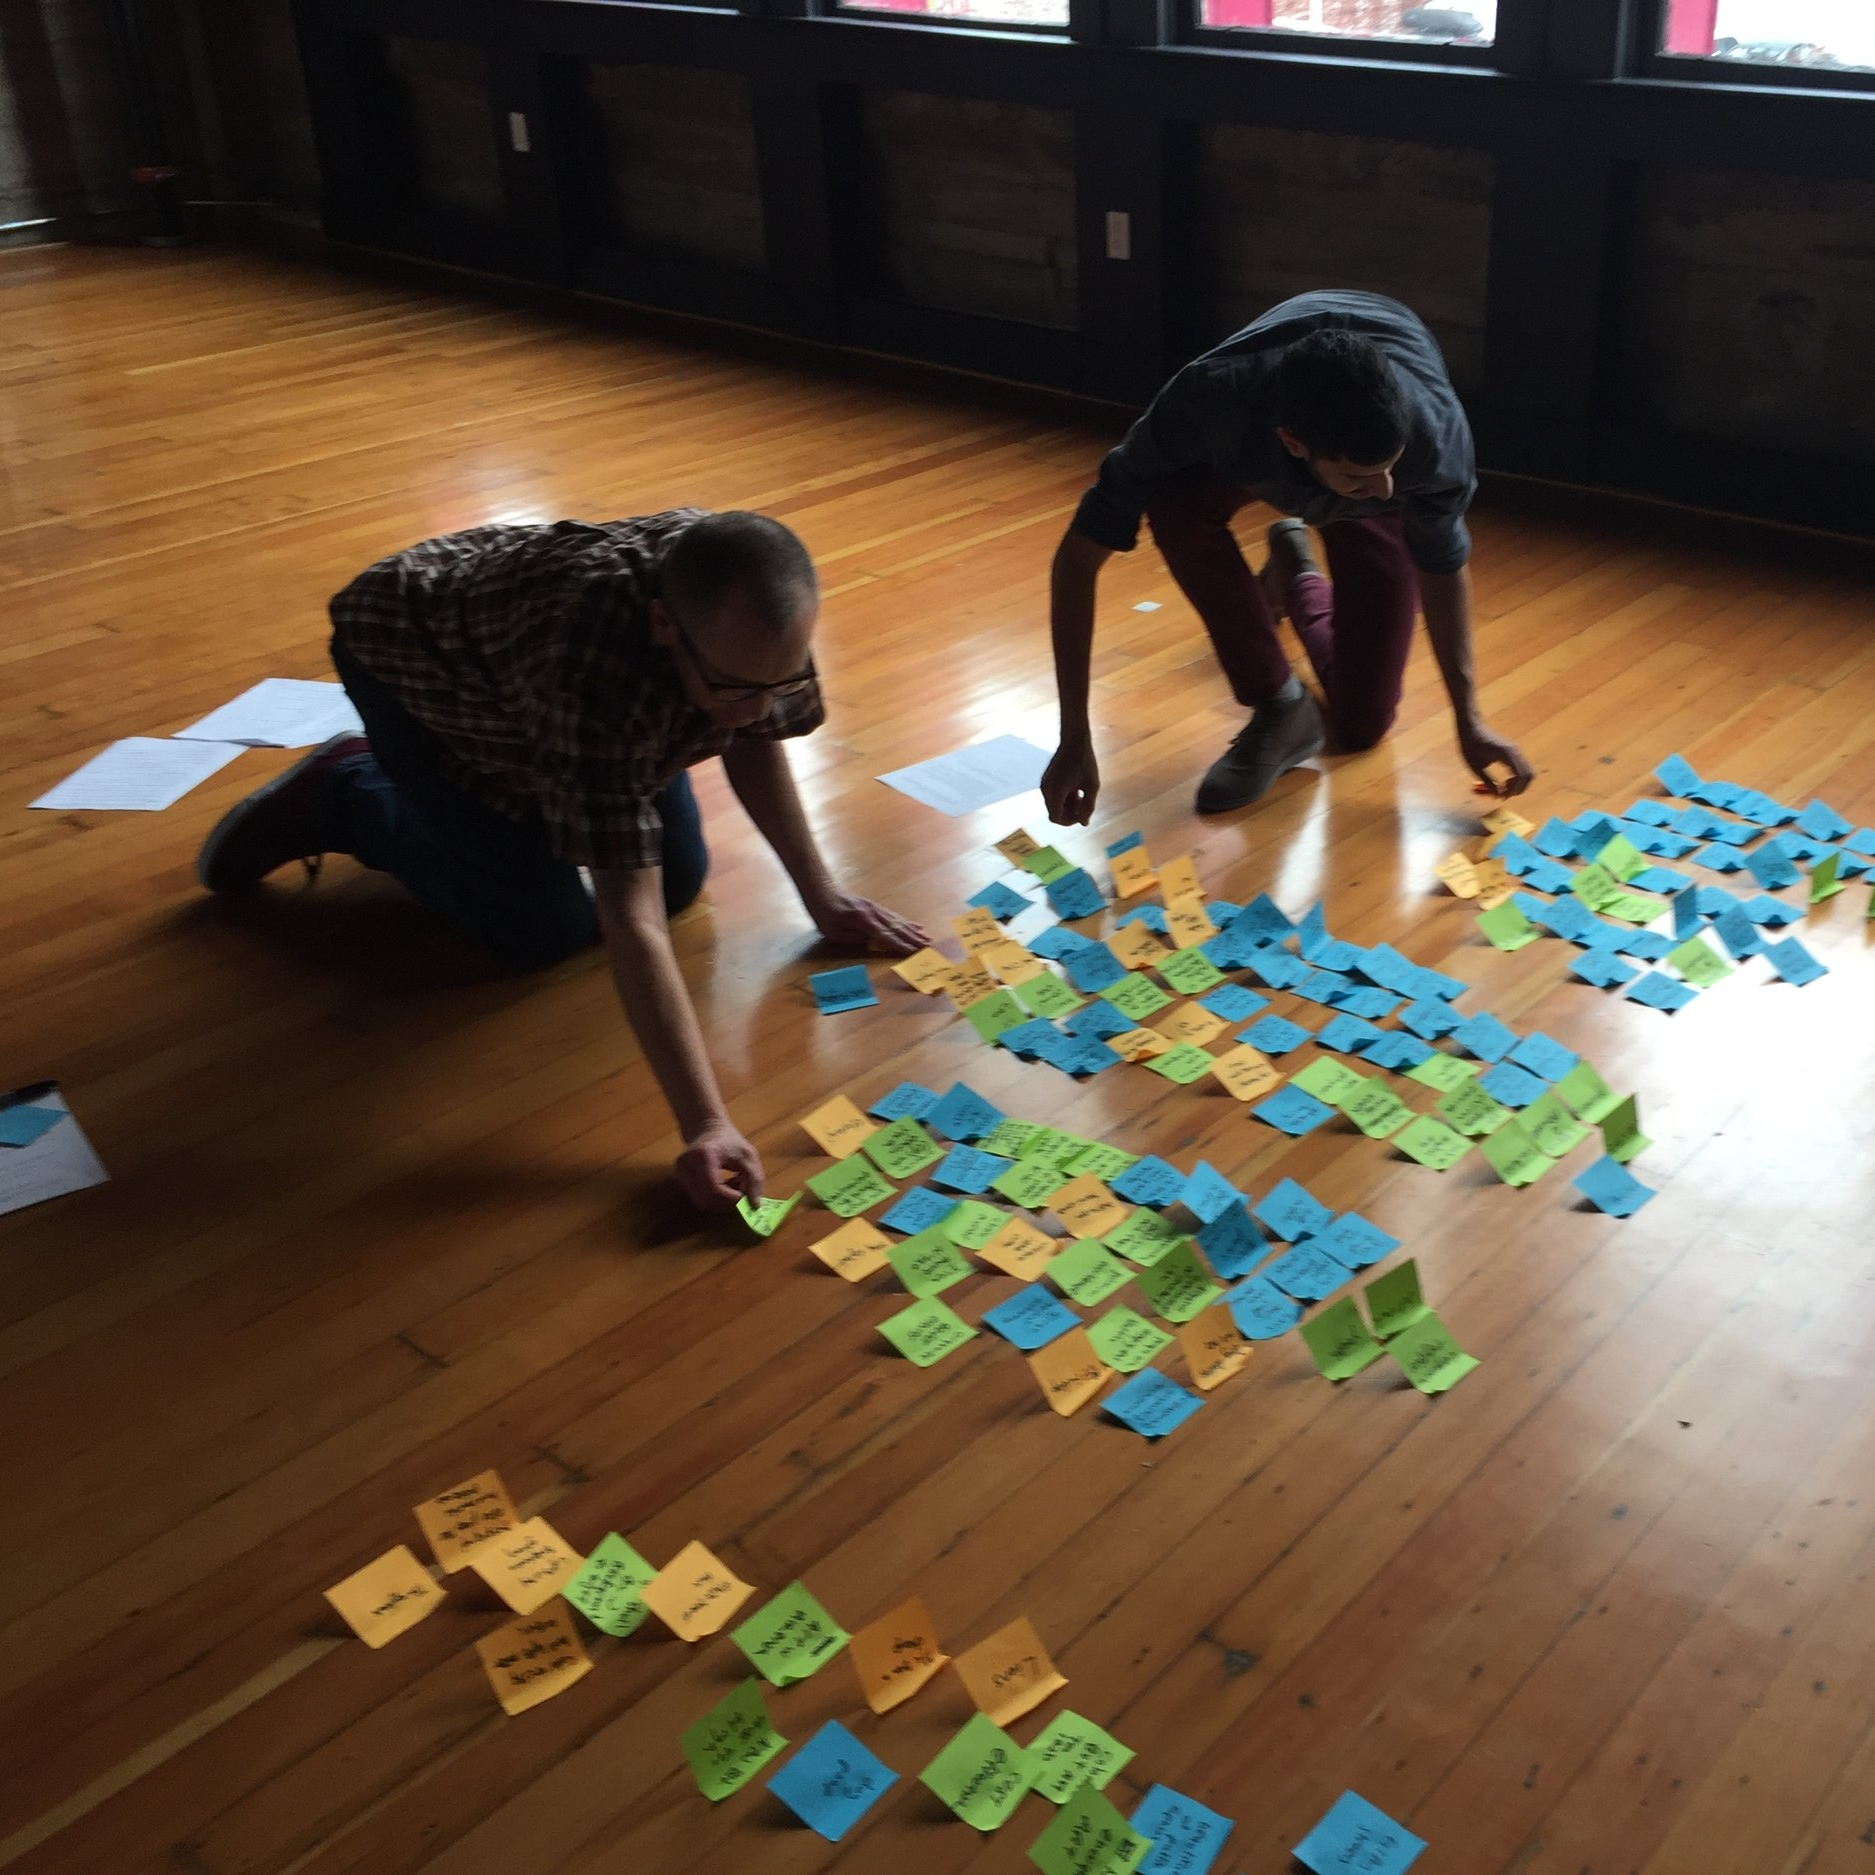 Synthesizing insights by arranging our findings in new ways